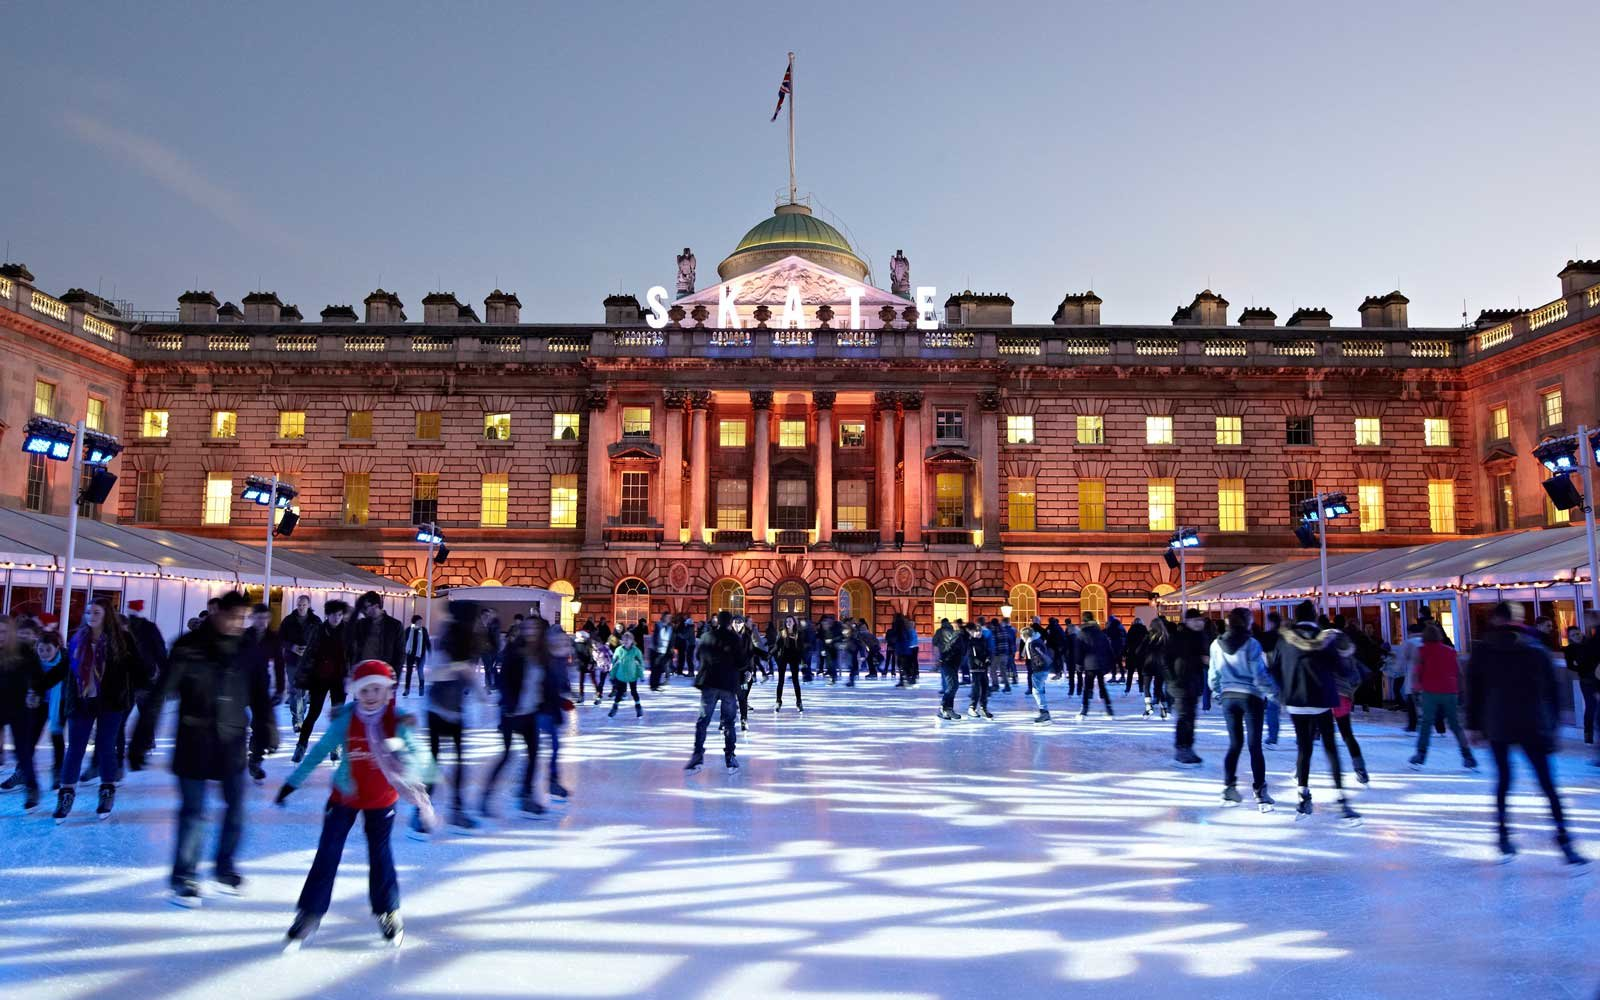 Ice skating rink in front of Somerset House in London